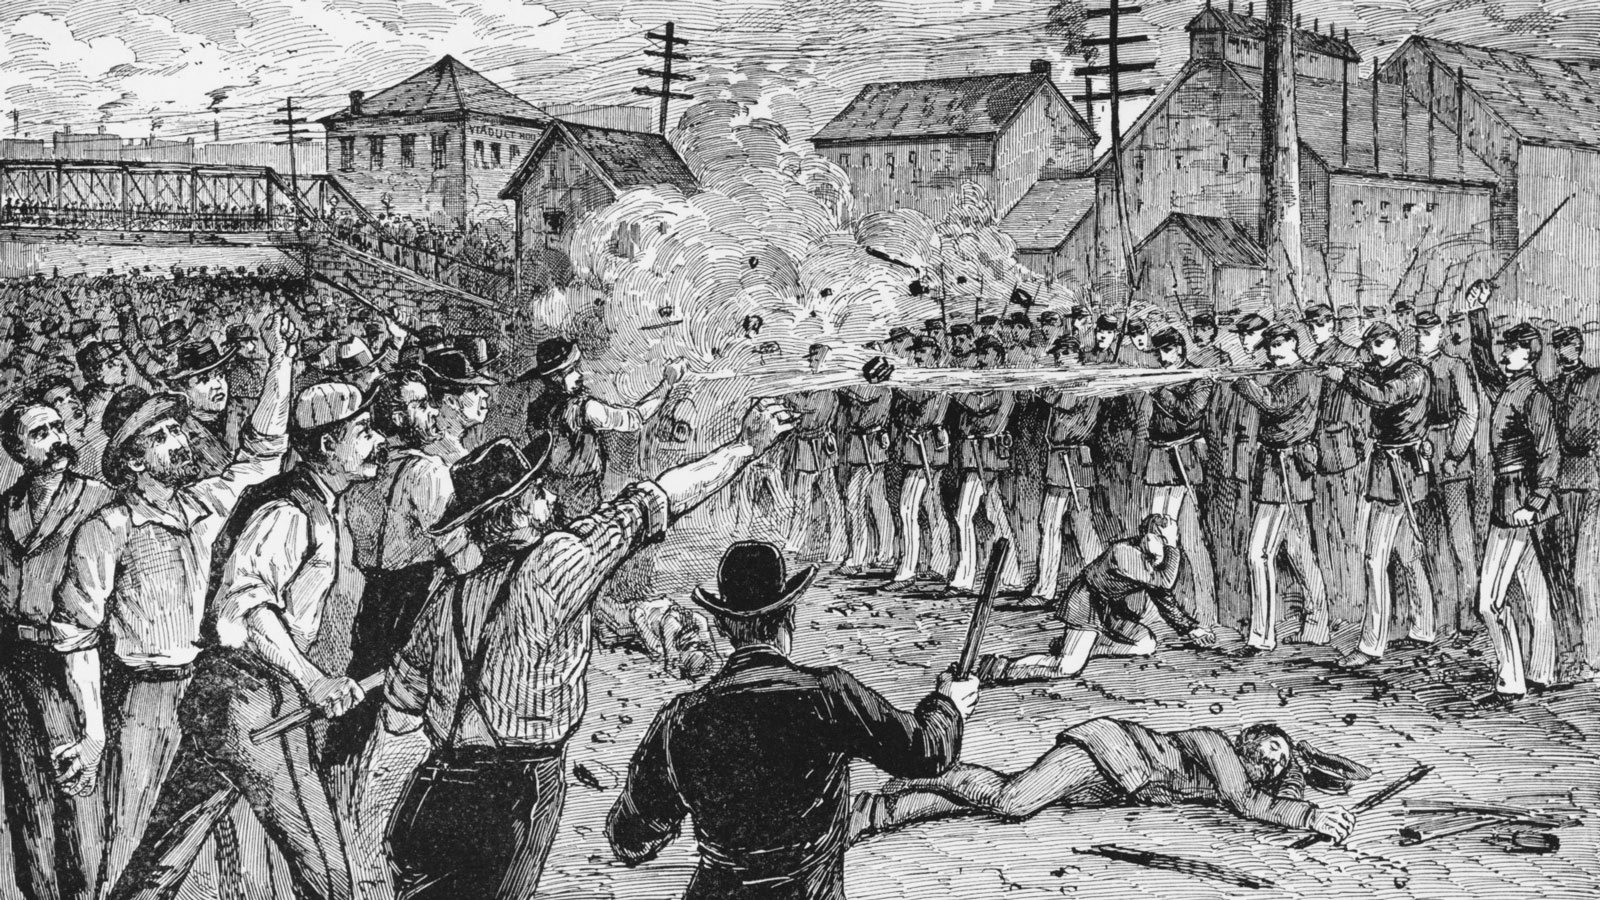 The Labor Troubles of 1877